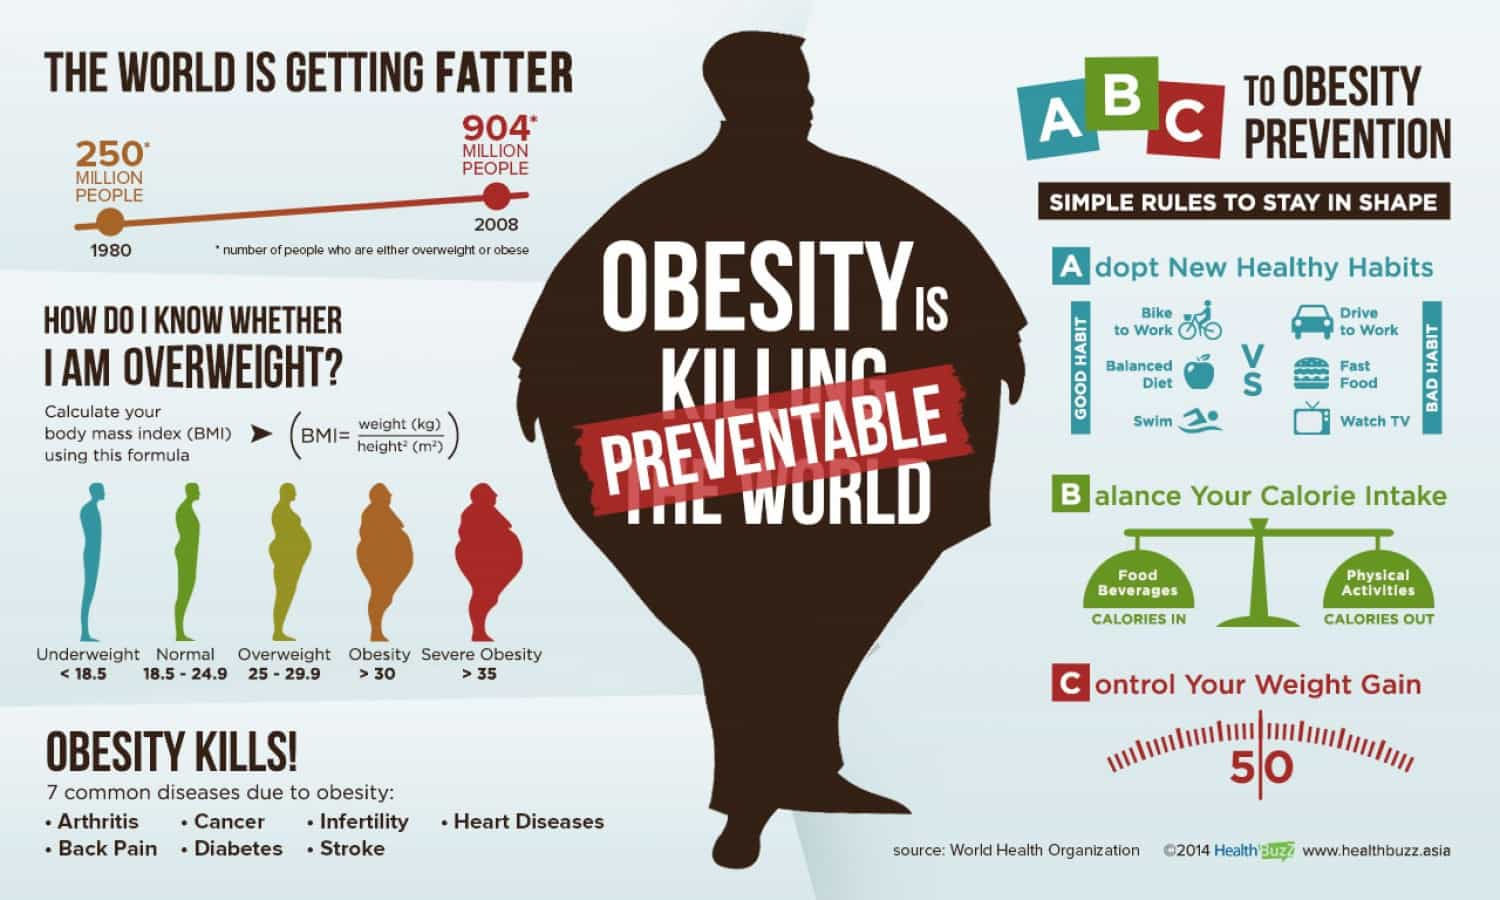 obesity if preventable